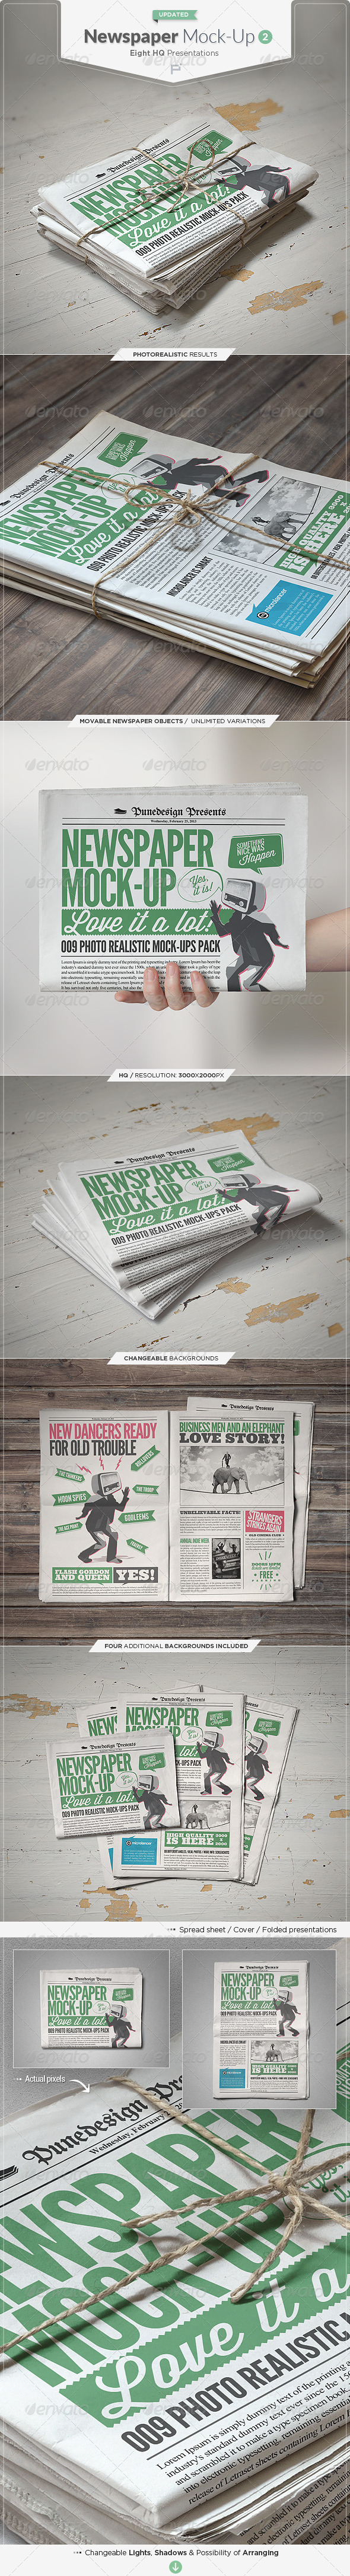 Newspaper / Newsletter Mock-Up - 2 - Miscellaneous Print